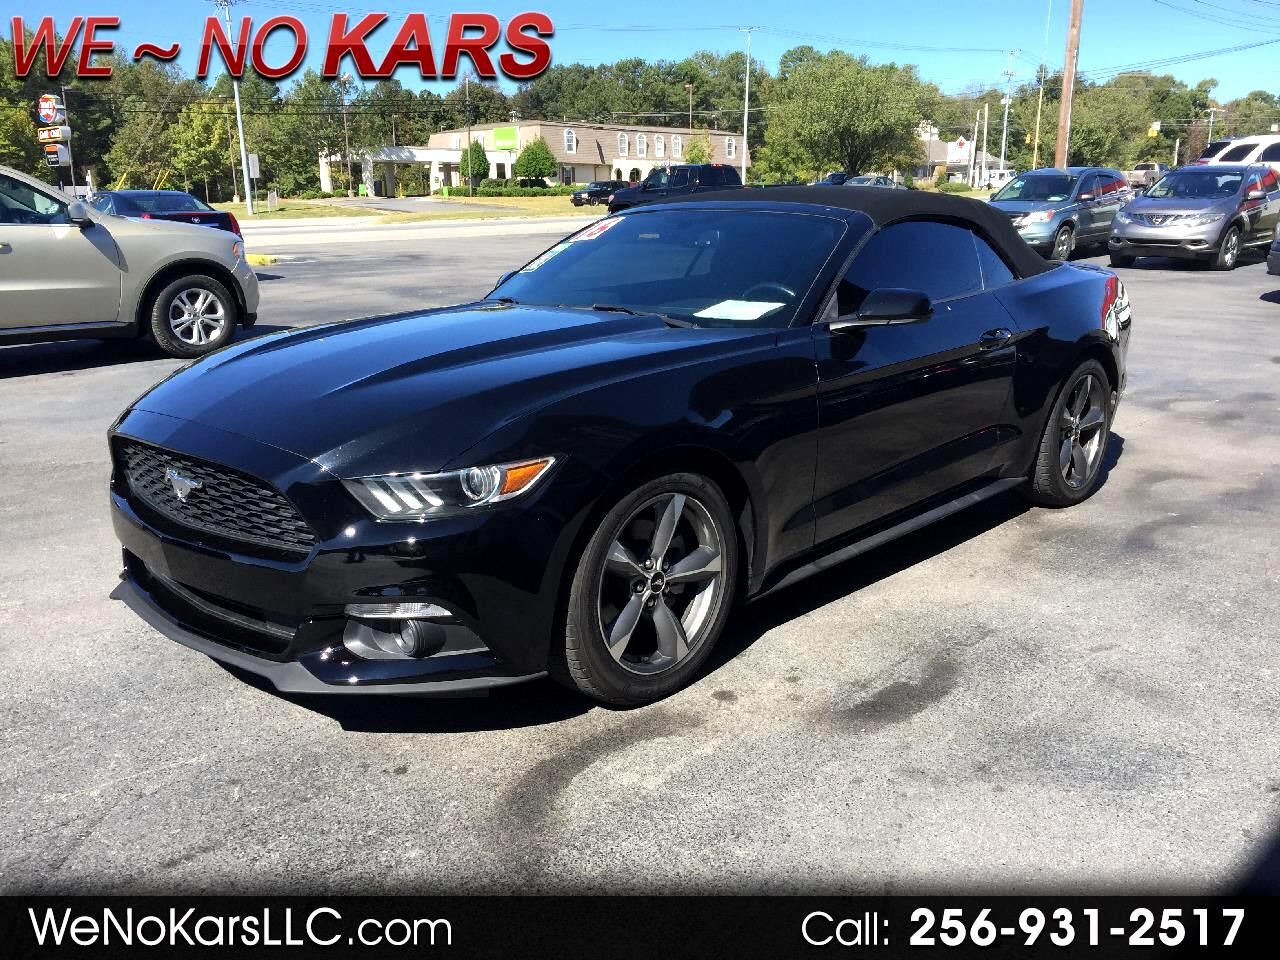 2016 Ford Mustang 2dr Convertible